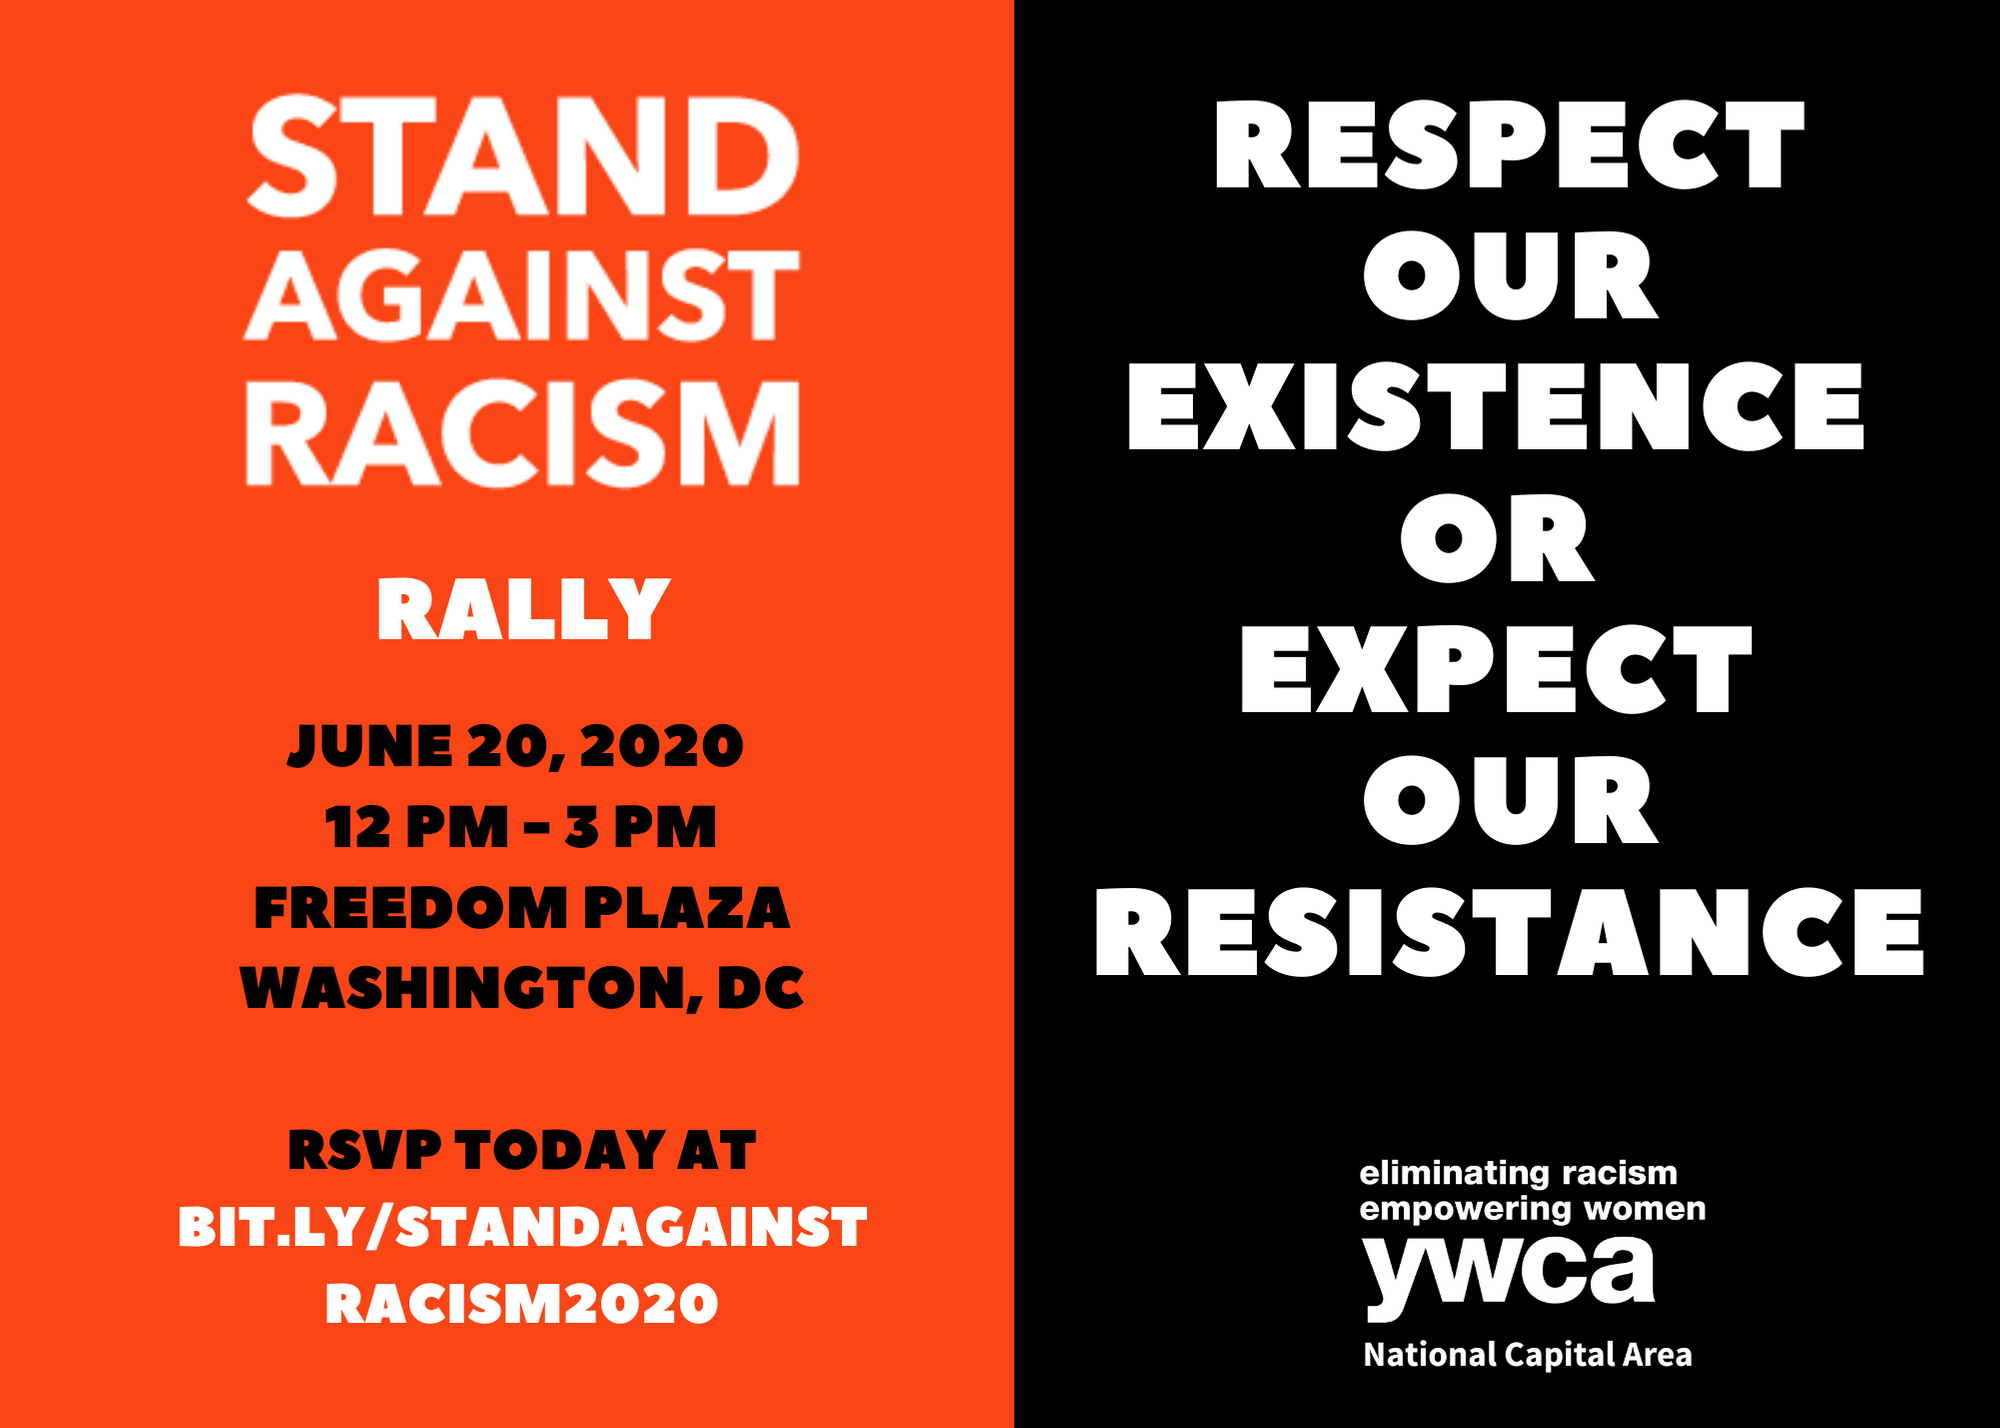 Stand Against Racism Rally: Respect our Existence or Expect our Resistance. @ Freedom Plaza